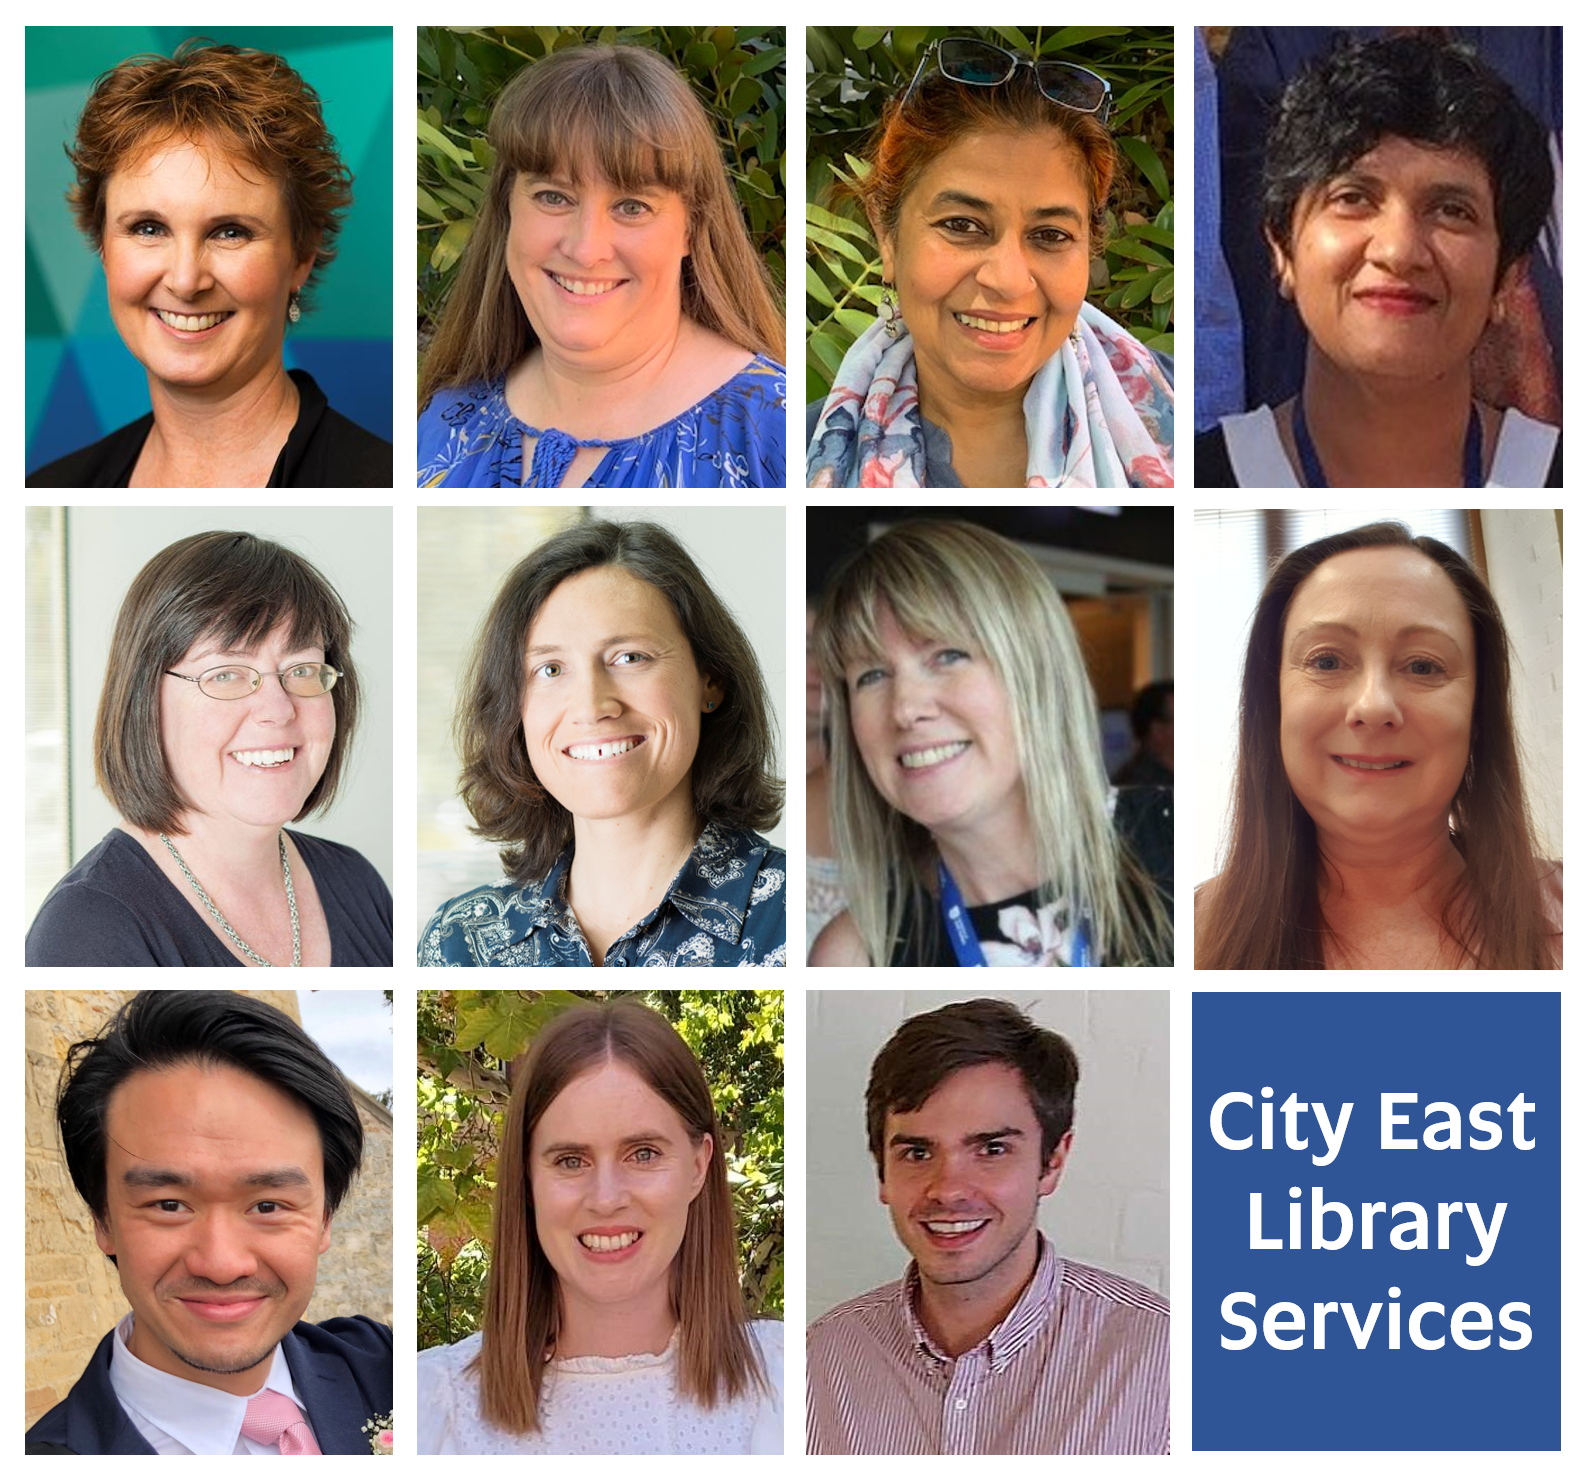 Profile photo of Library Services team - City East